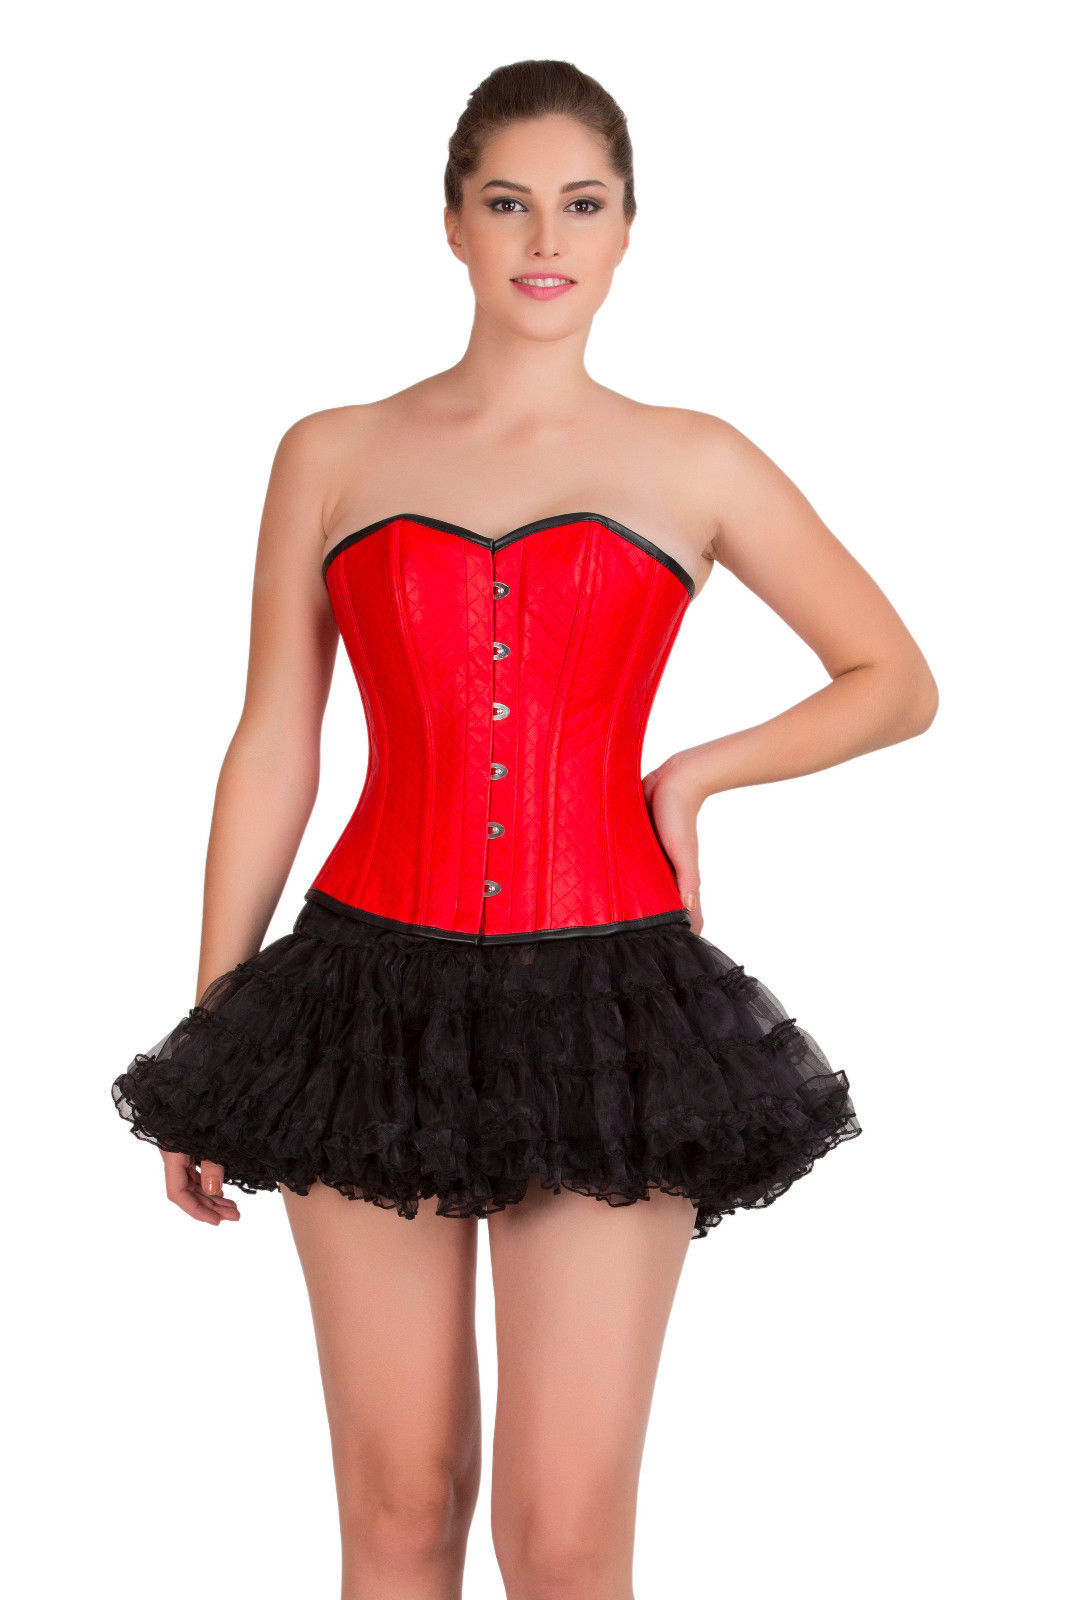 2e99750663f 57. 57. Previous. Red Leather Gothic Steampunk Overbust Top   Black Tissue  Tutu Skirt Corset Dress